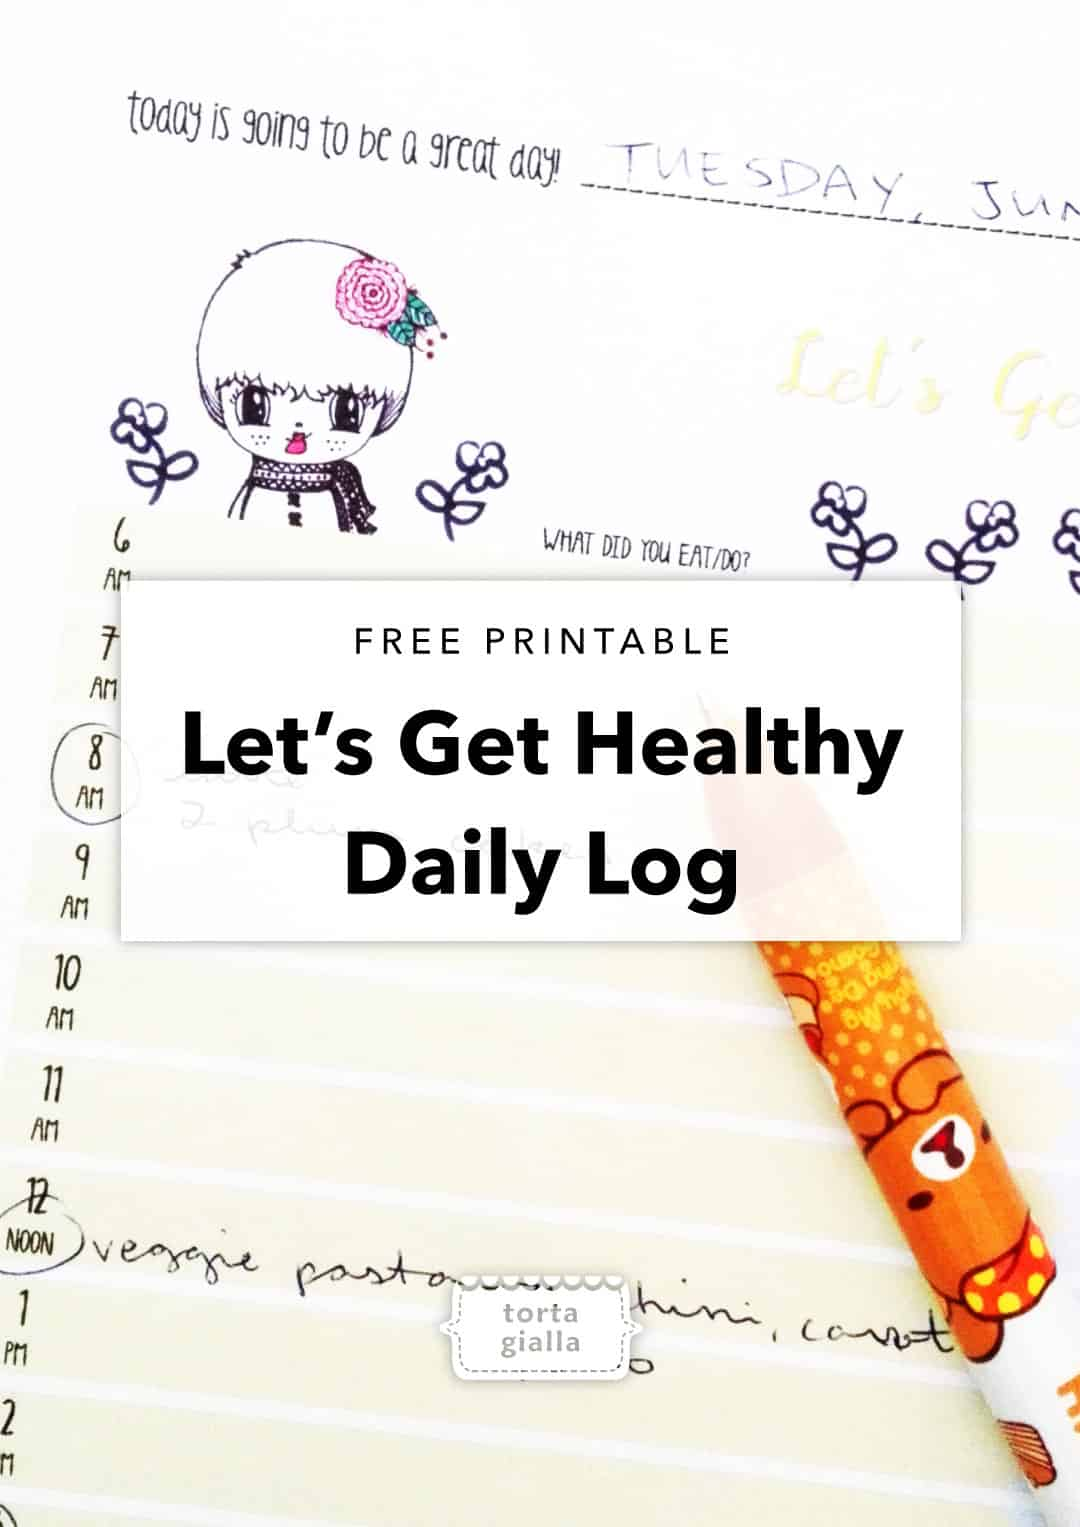 Let's Get Healthy Daily Log Printable